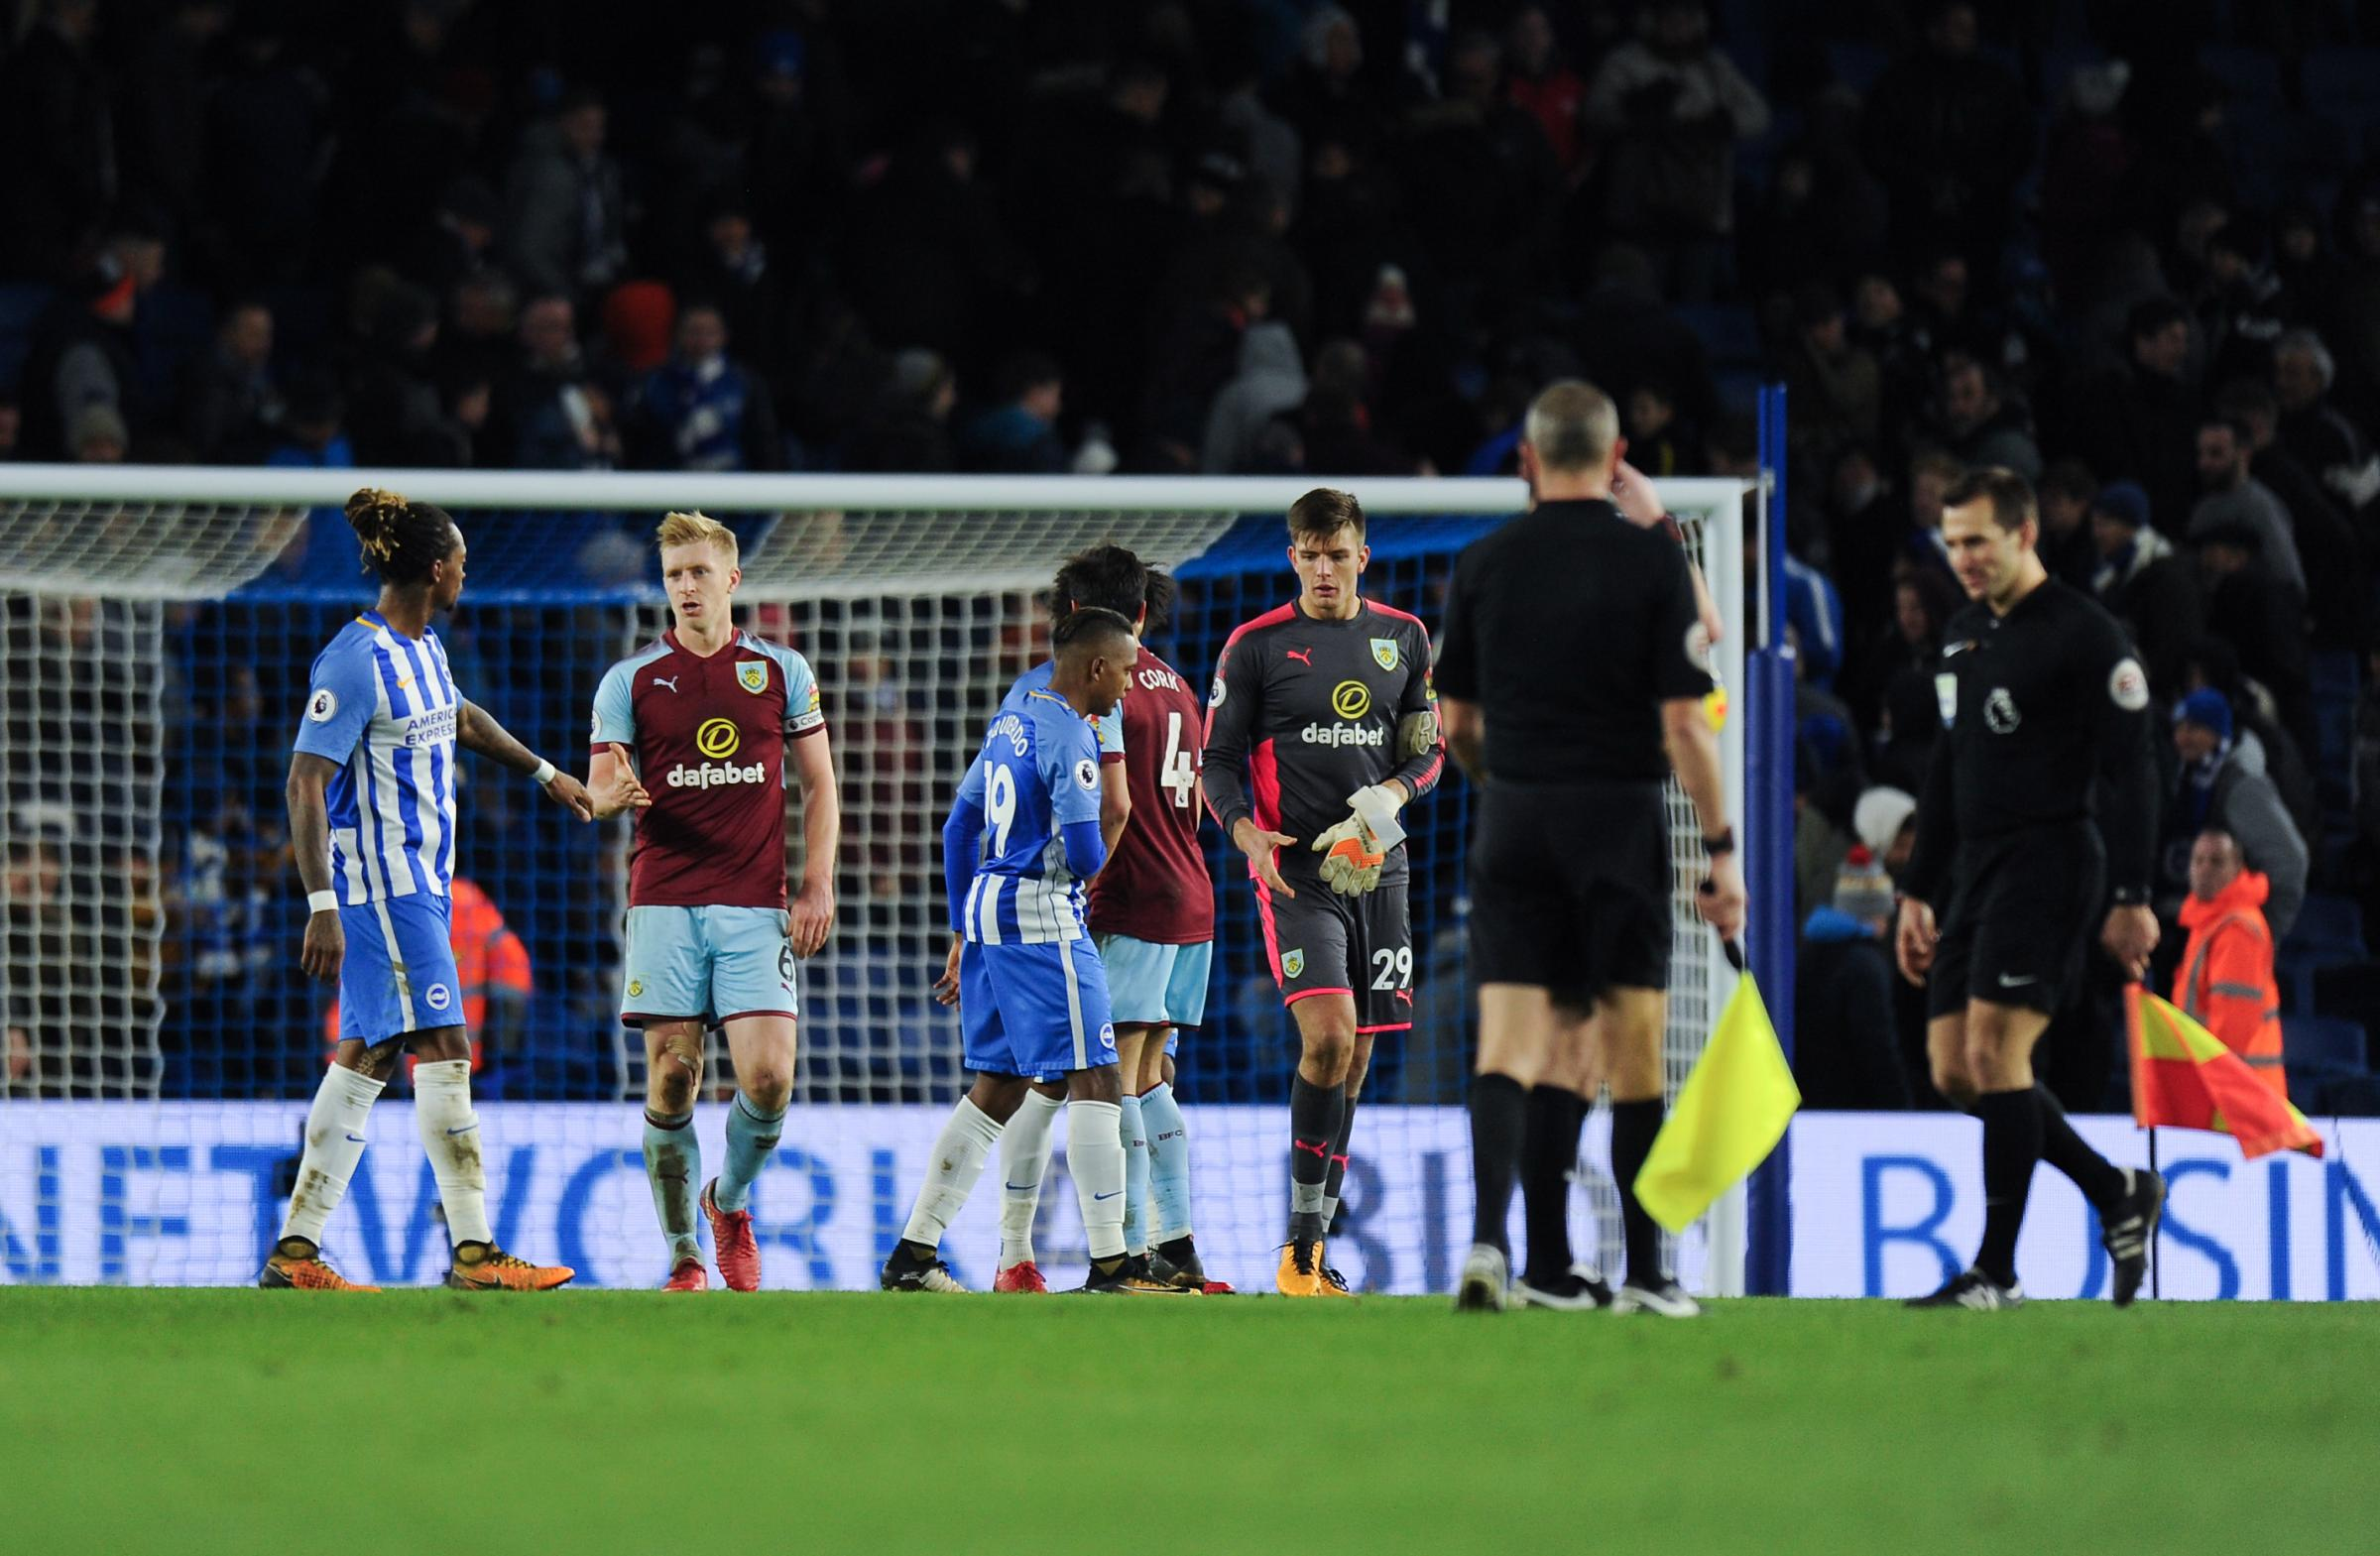 Burnley were on the end of injustice from match officials this weekend